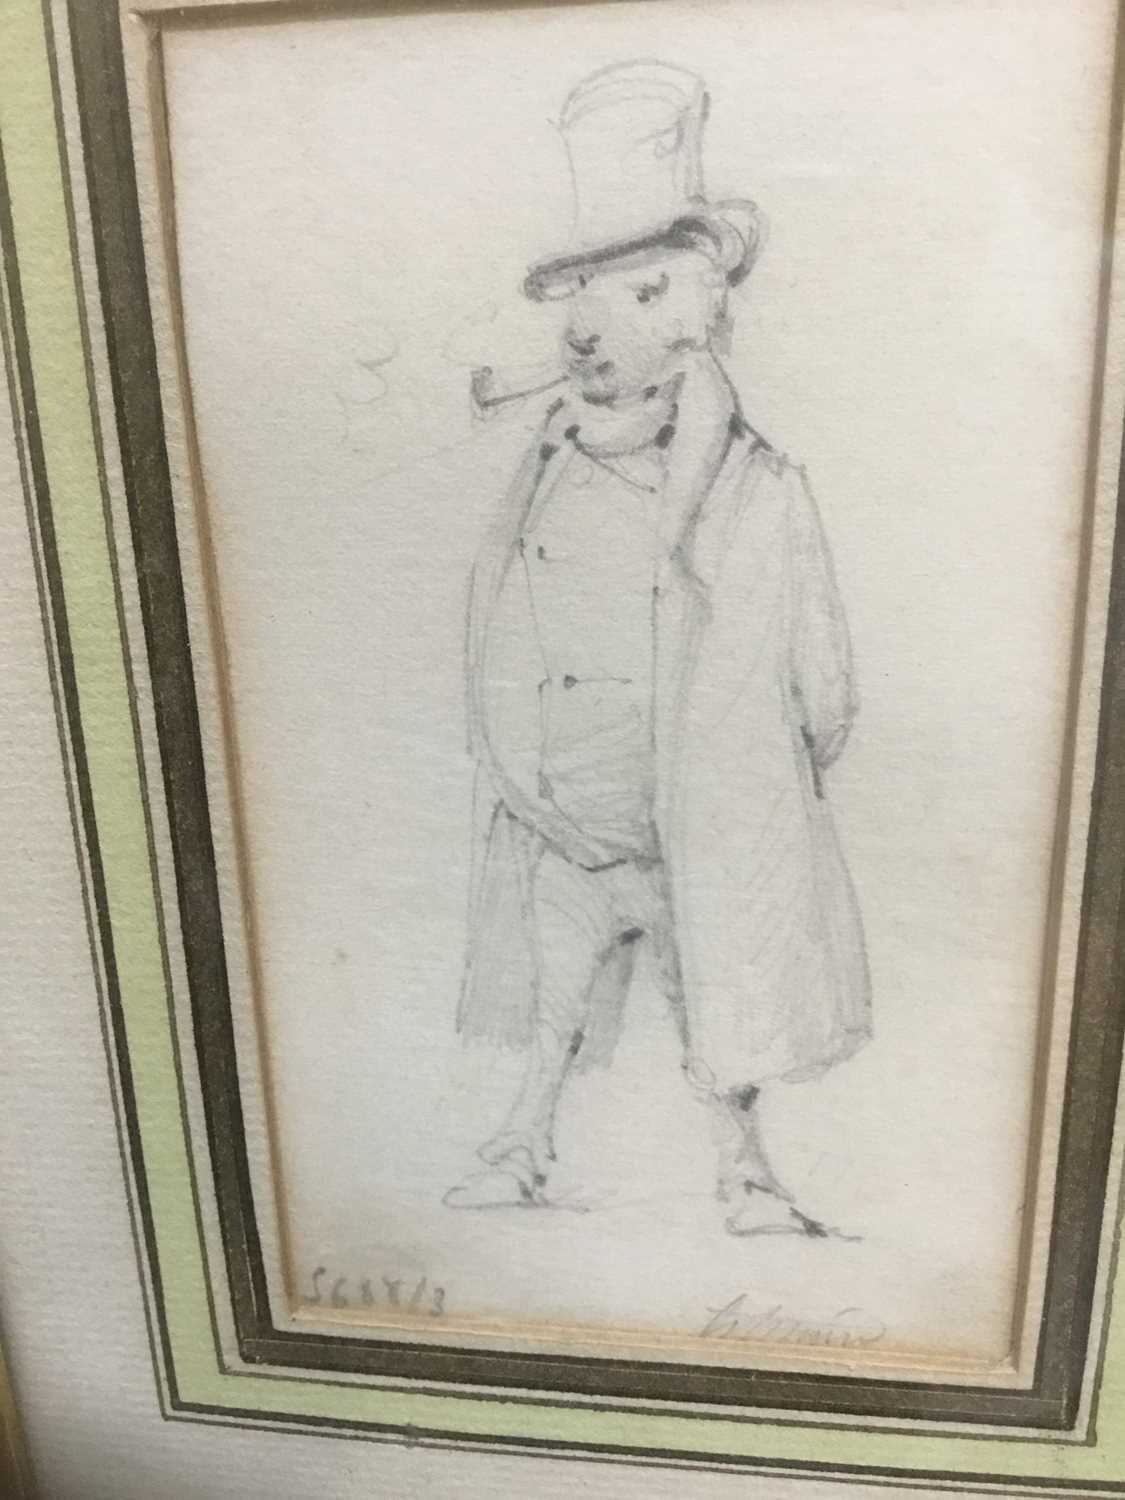 Henry Bonaventure Monnier (1805-1877) three pencil sketch caricatures of figures, tow signed, 14.5cm - Image 5 of 9